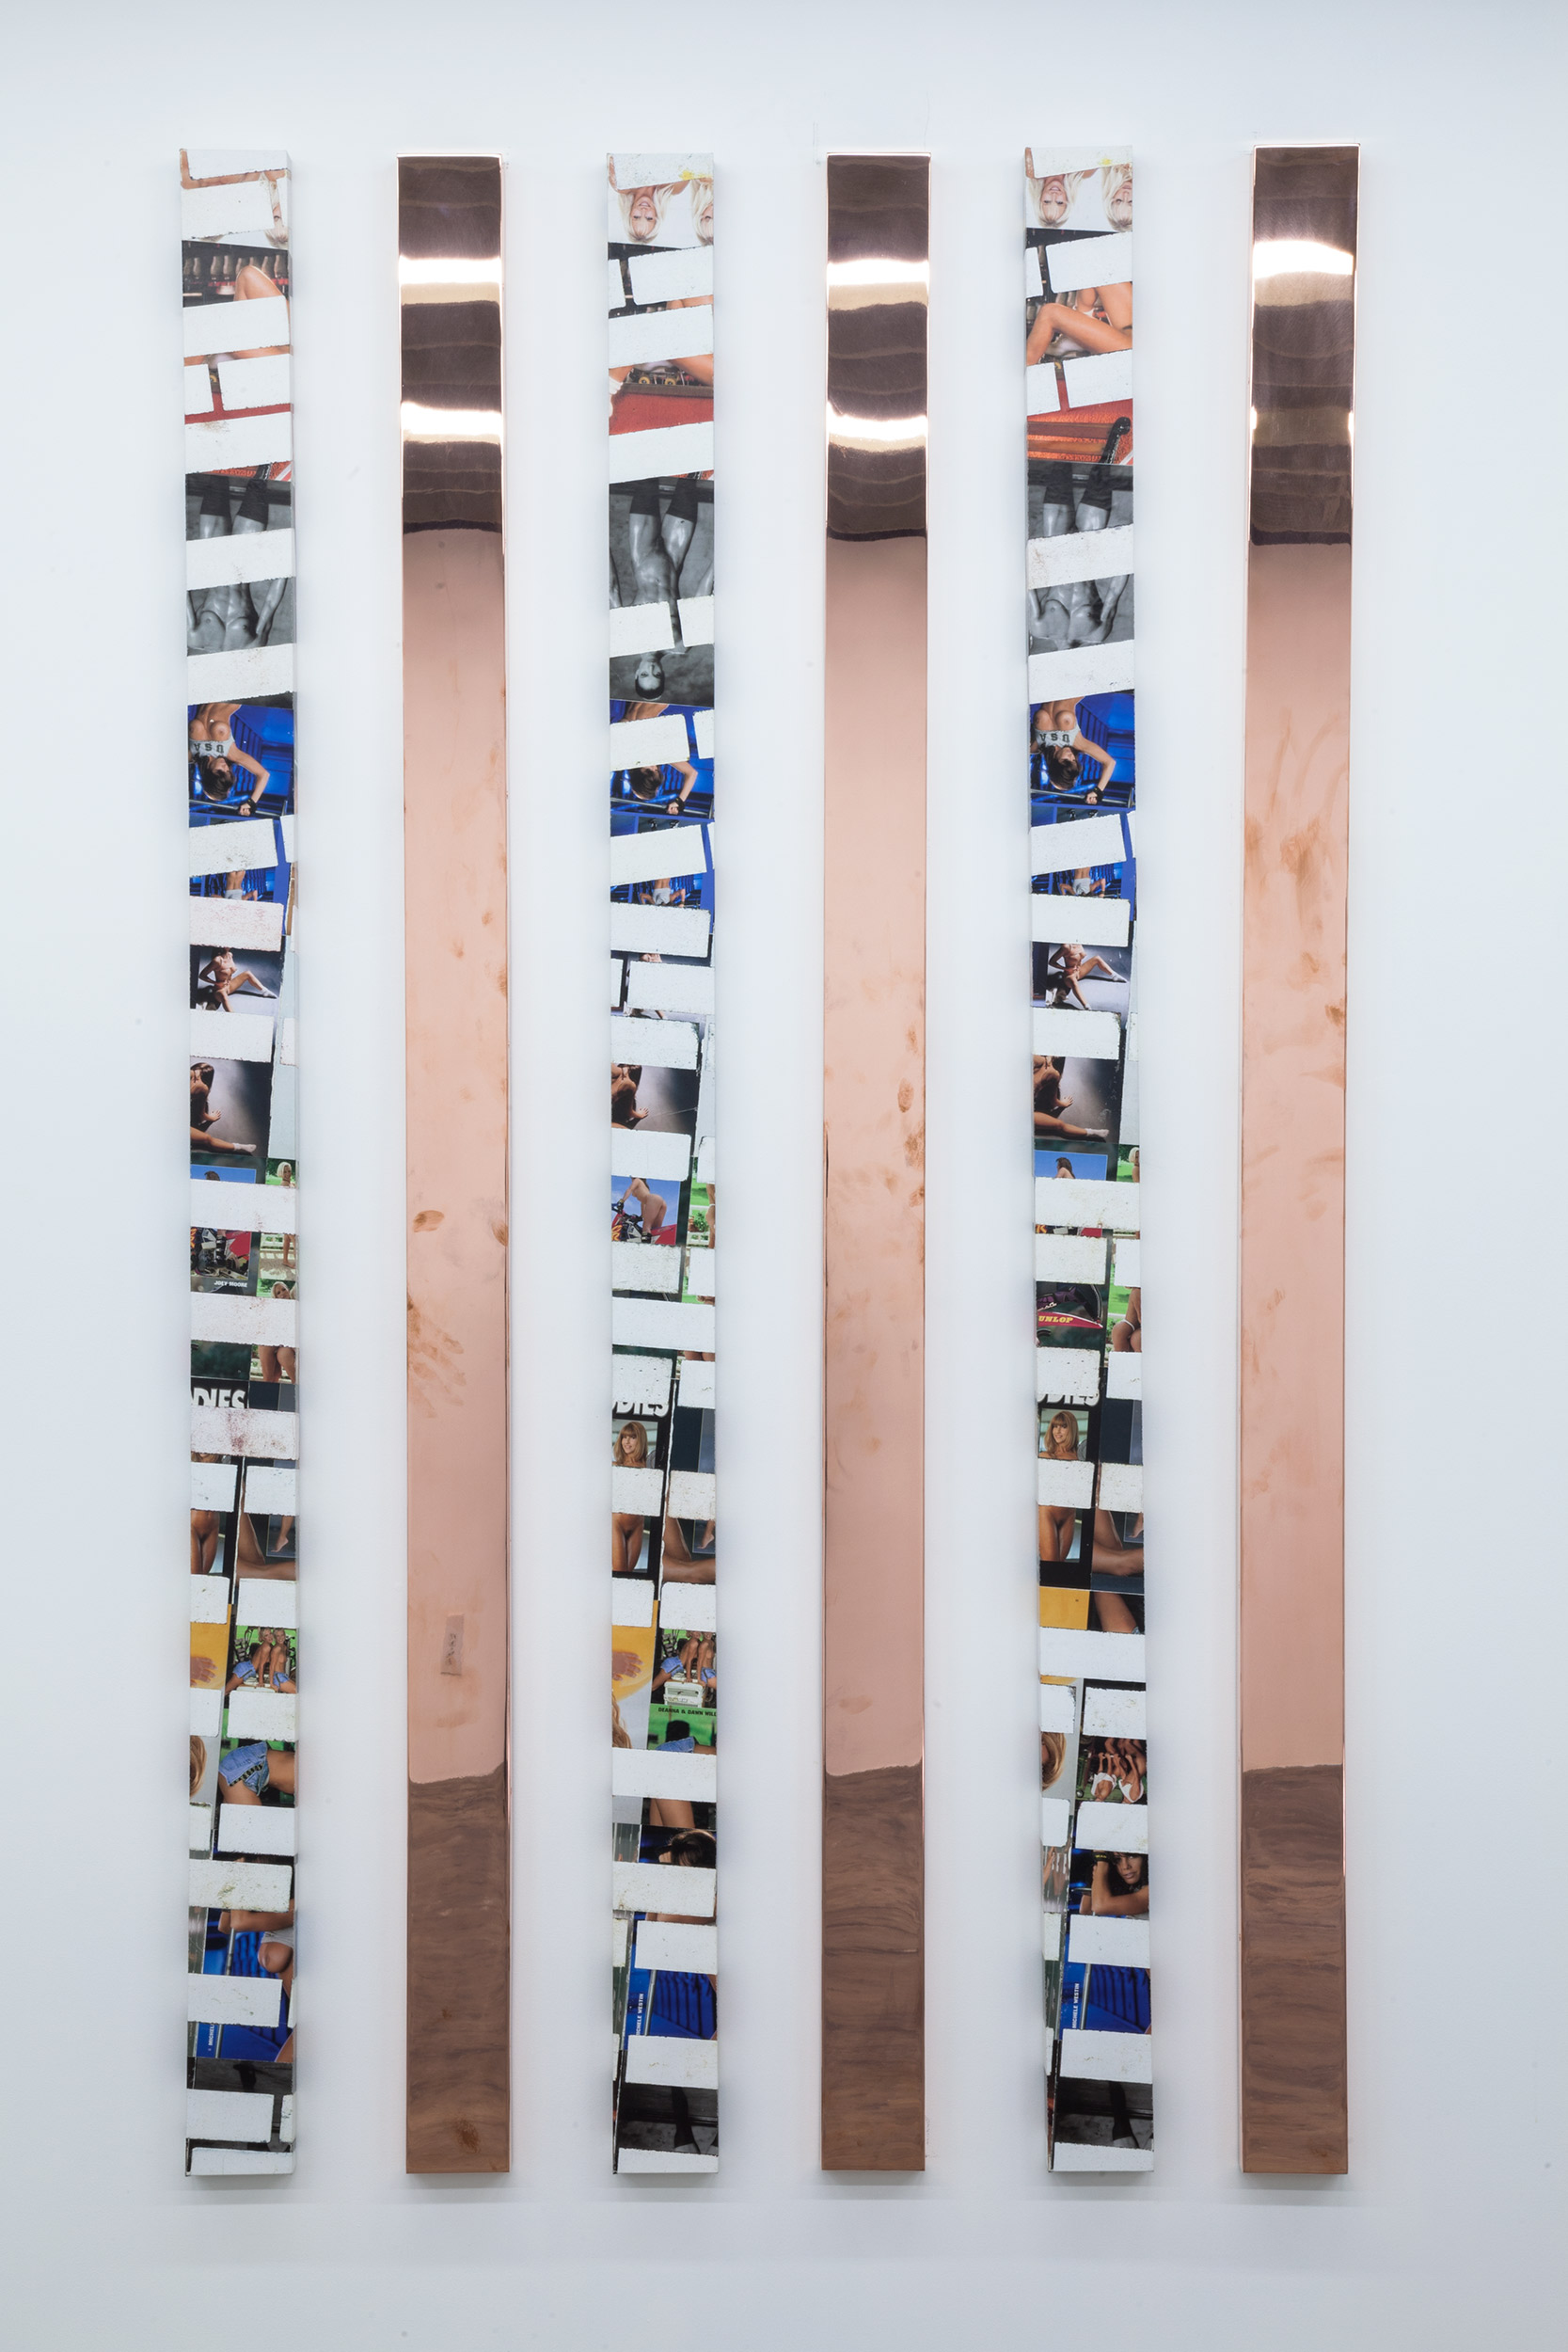 Walead Beshty and Kelley Walker   Hardbody Software (February 26/May 14, 2014, Los Angeles, California)   2014–  Acrylic and ink on canvas, polished copper  96 x 5 inches each   Hardbody Software, 2014